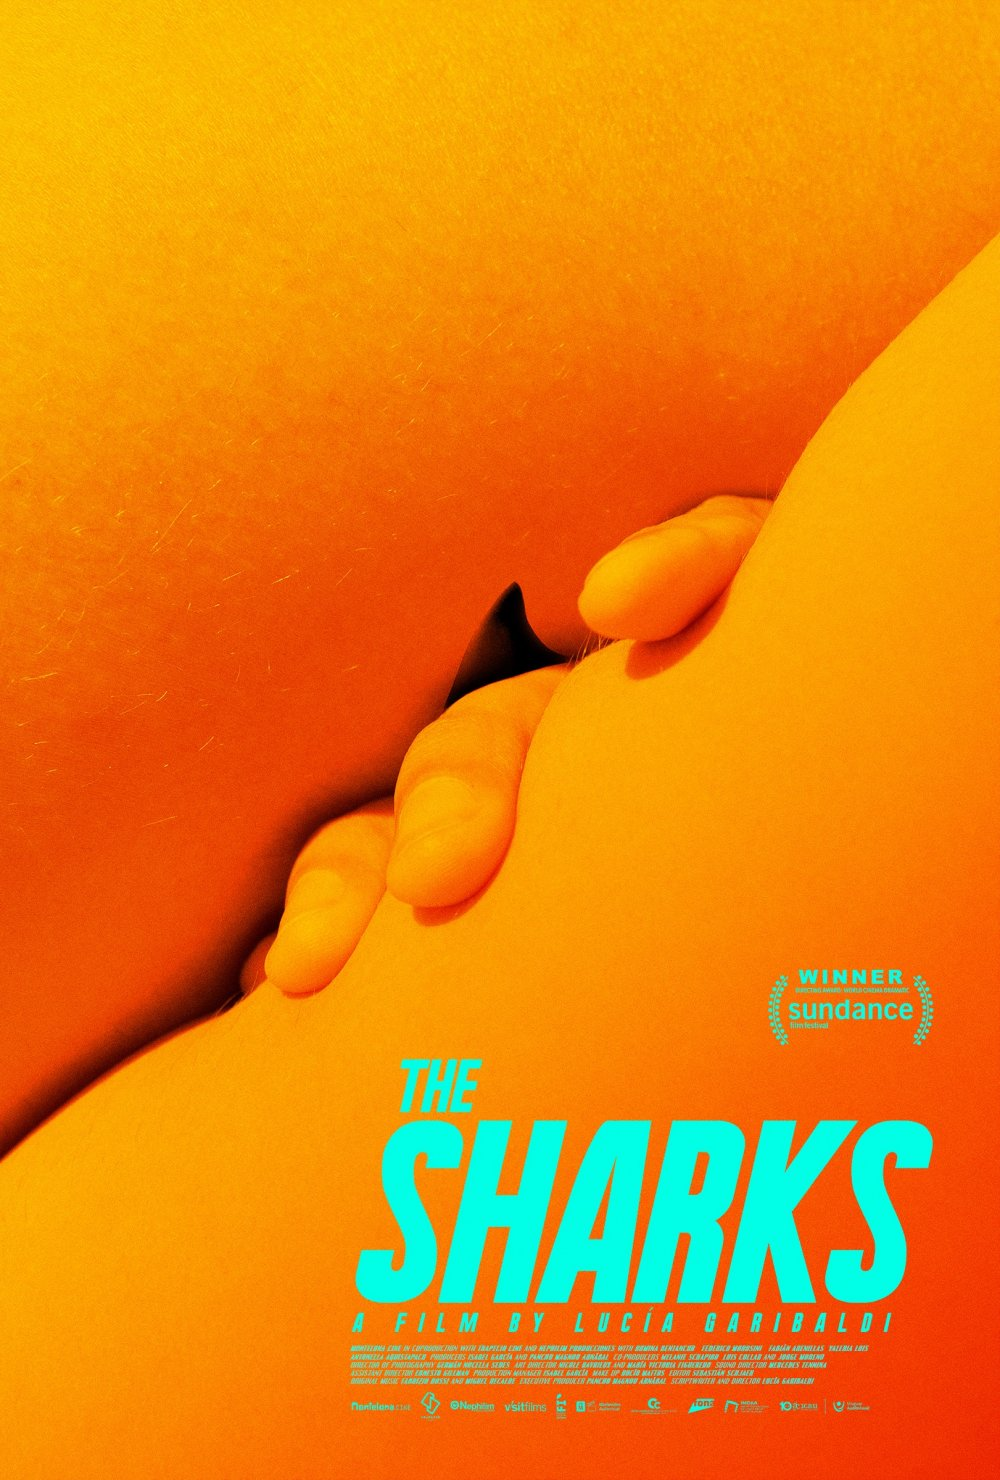 <strong>The Sharks</strong>  An intriguing coming-of-age tale is presented through the allegorical prism of an environmental incident